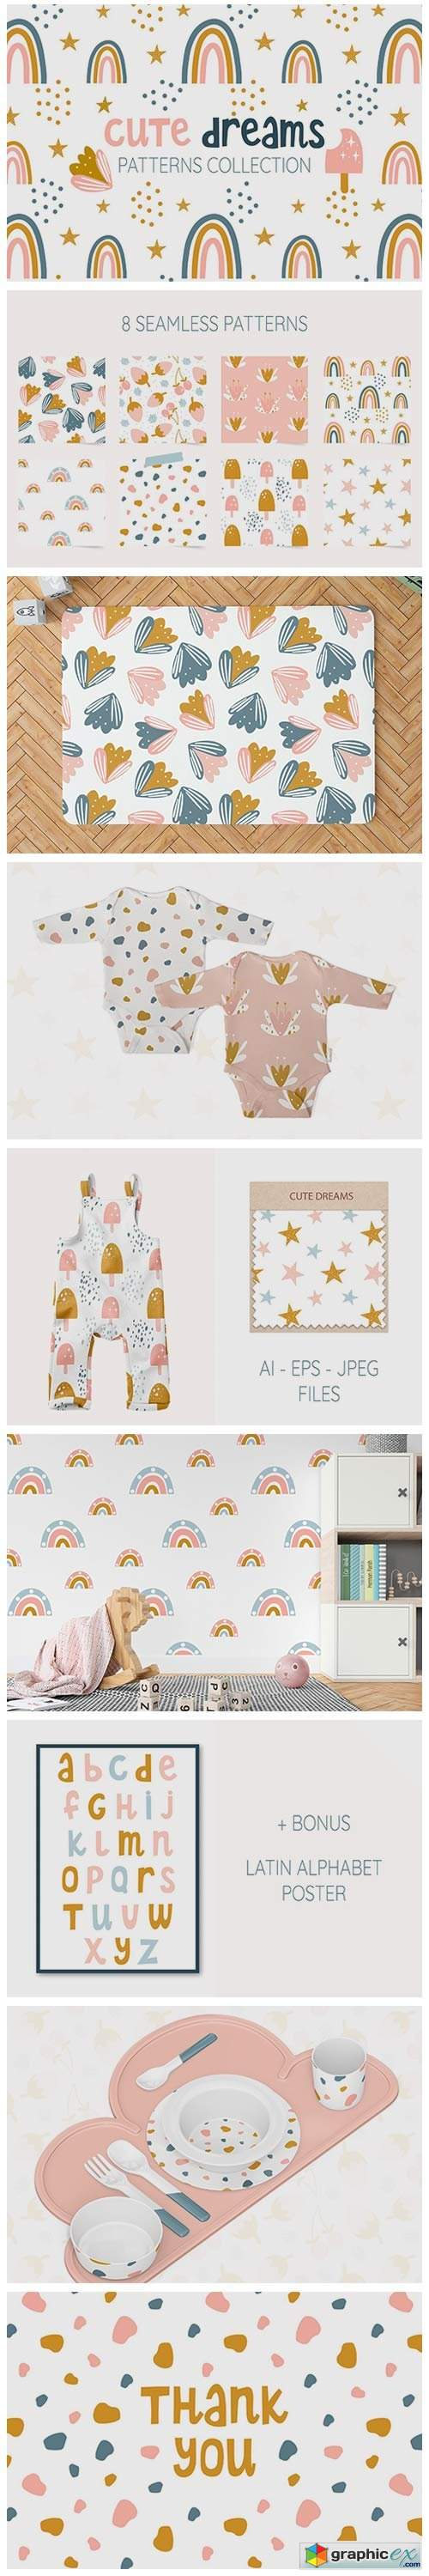 Cute Dreams. Patterns for Kids